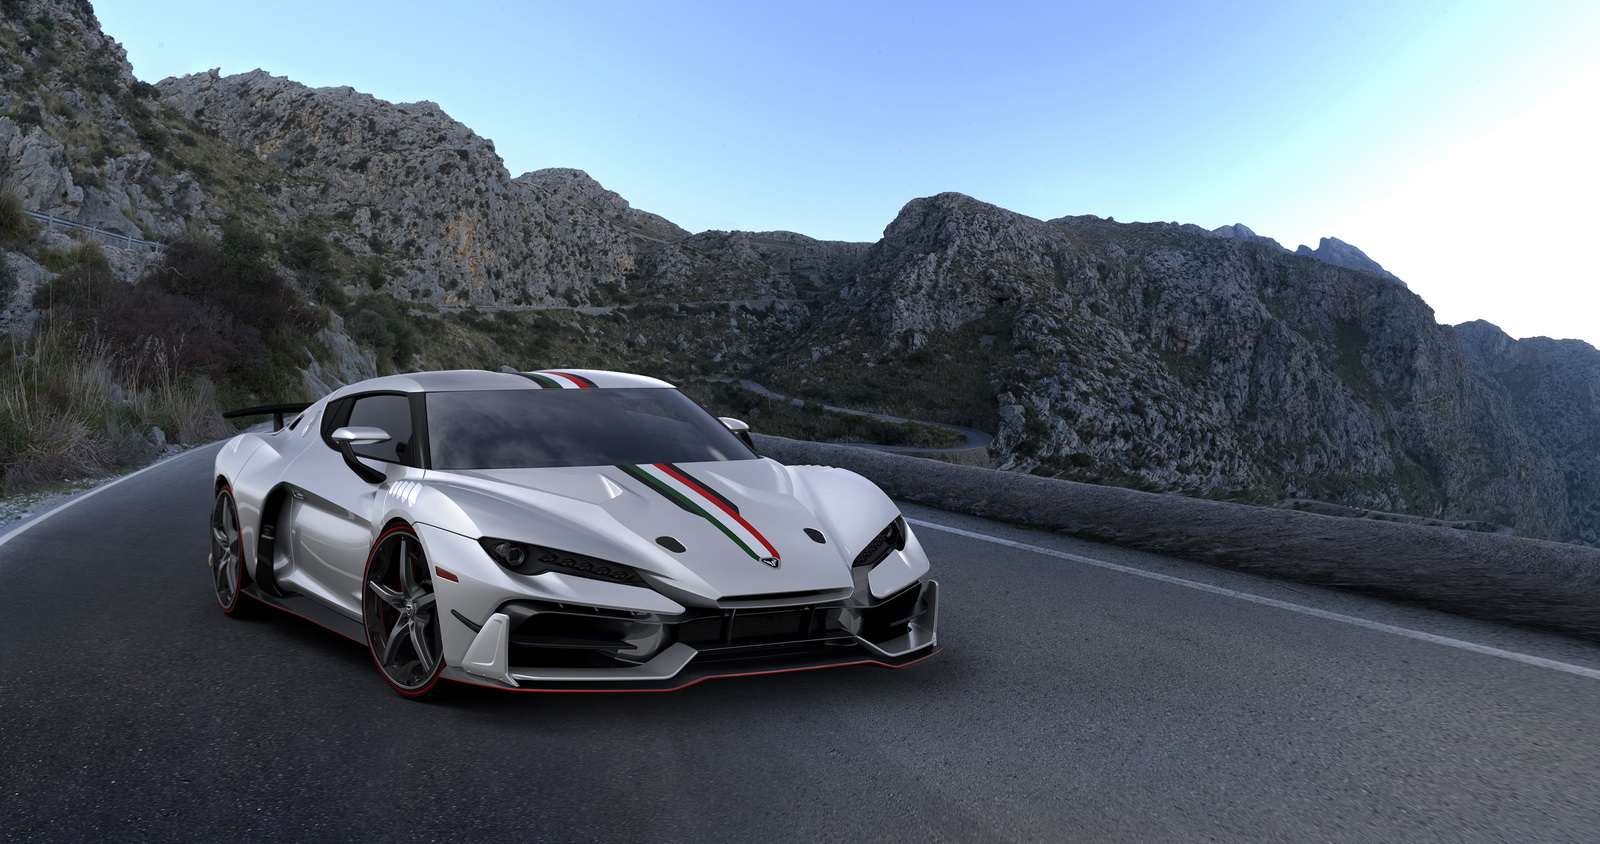 Italdesign Zerouno (8)